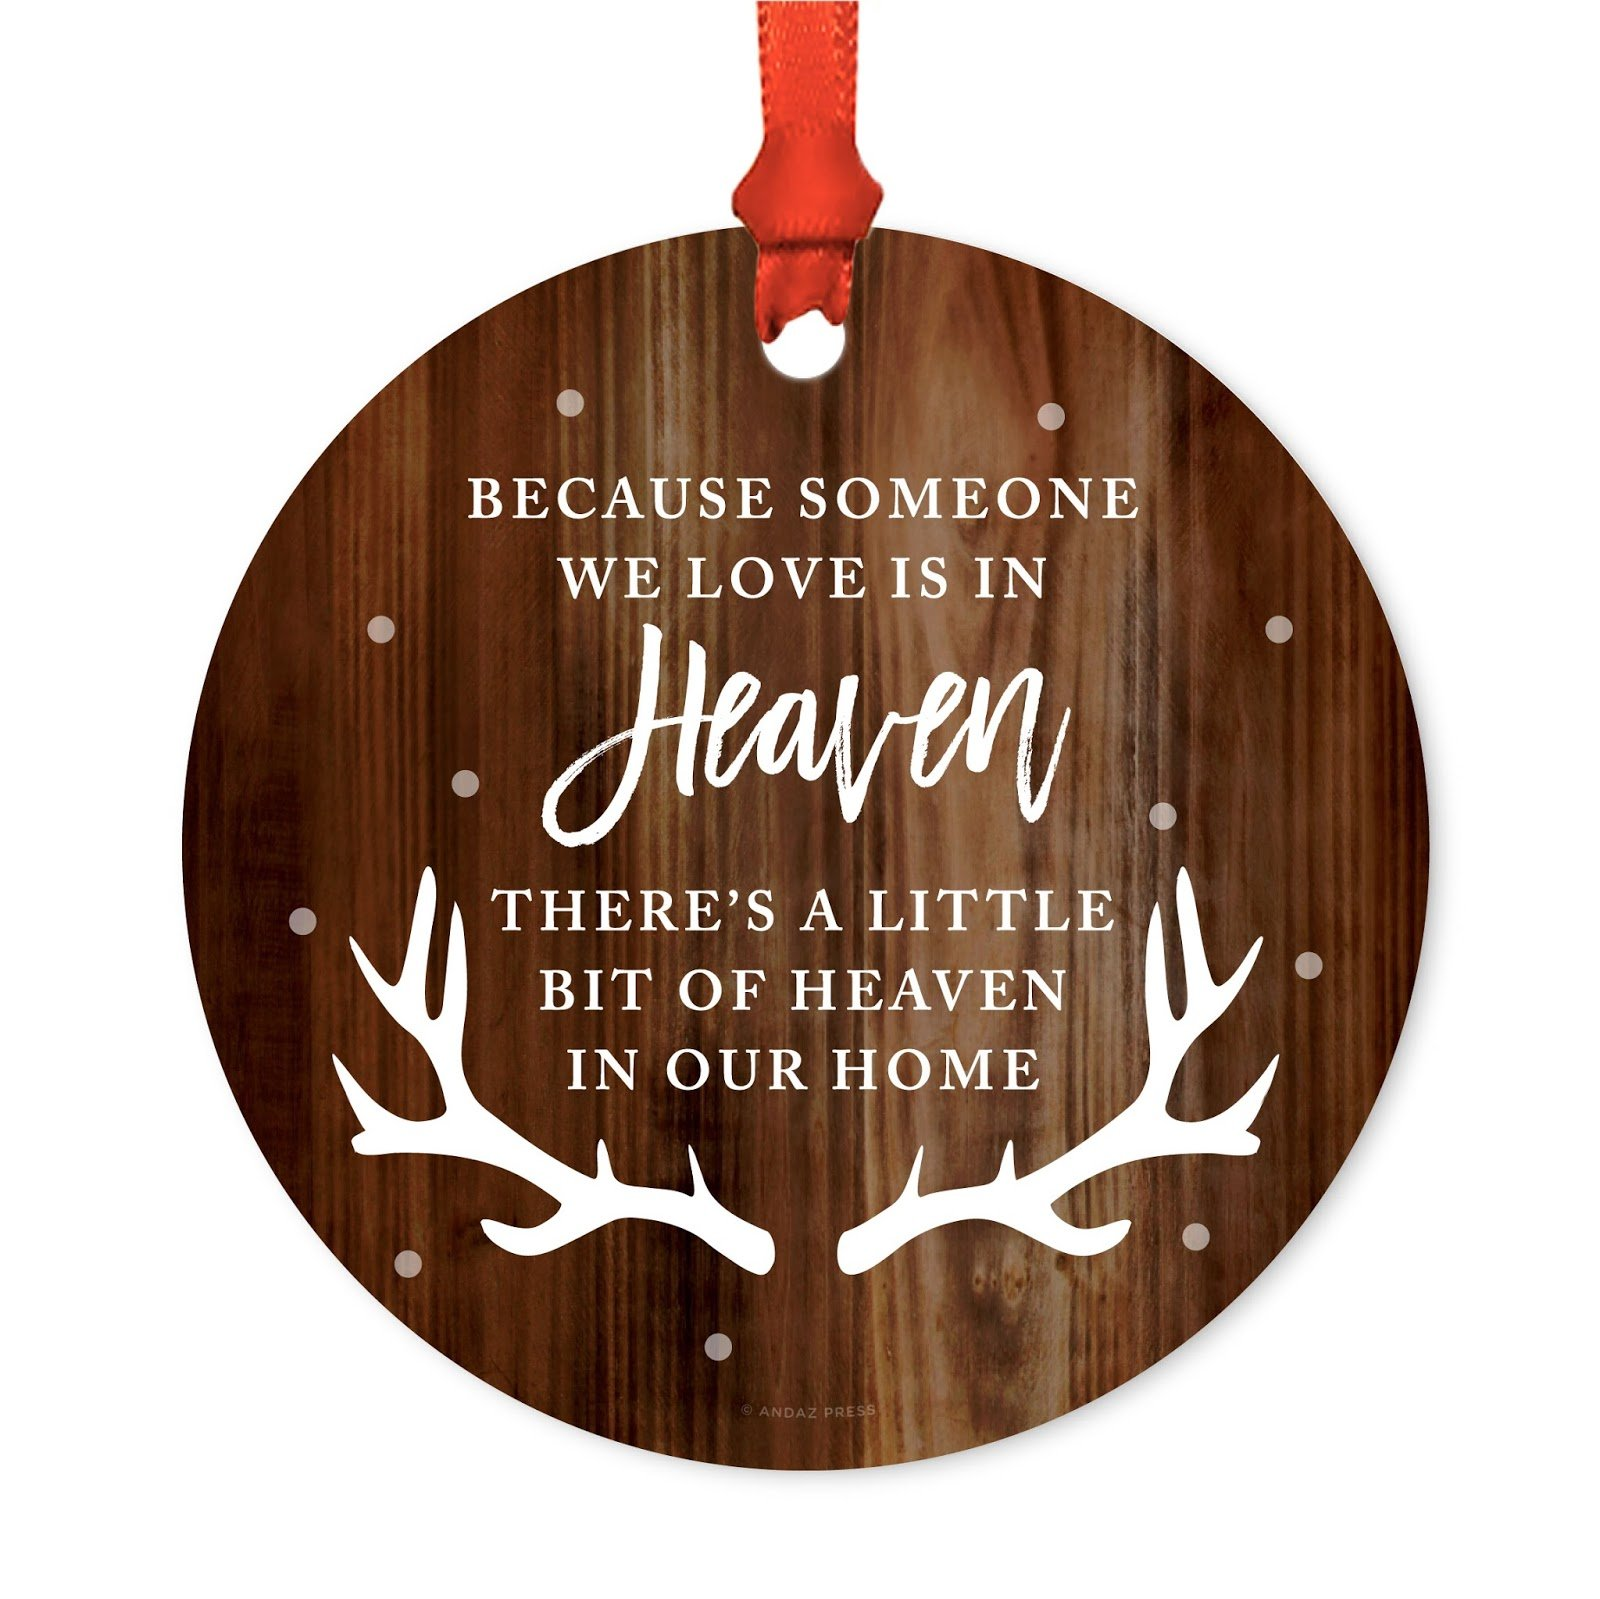 Andaz Press Memorial Metal Christmas Ornament, Because Someone We Love is in Heaven, There's a Little Bit of Heaven in Our Home, Rustic Wood with Deer Antlers, 1-Pack, Includes Ribbon and Gift Bag